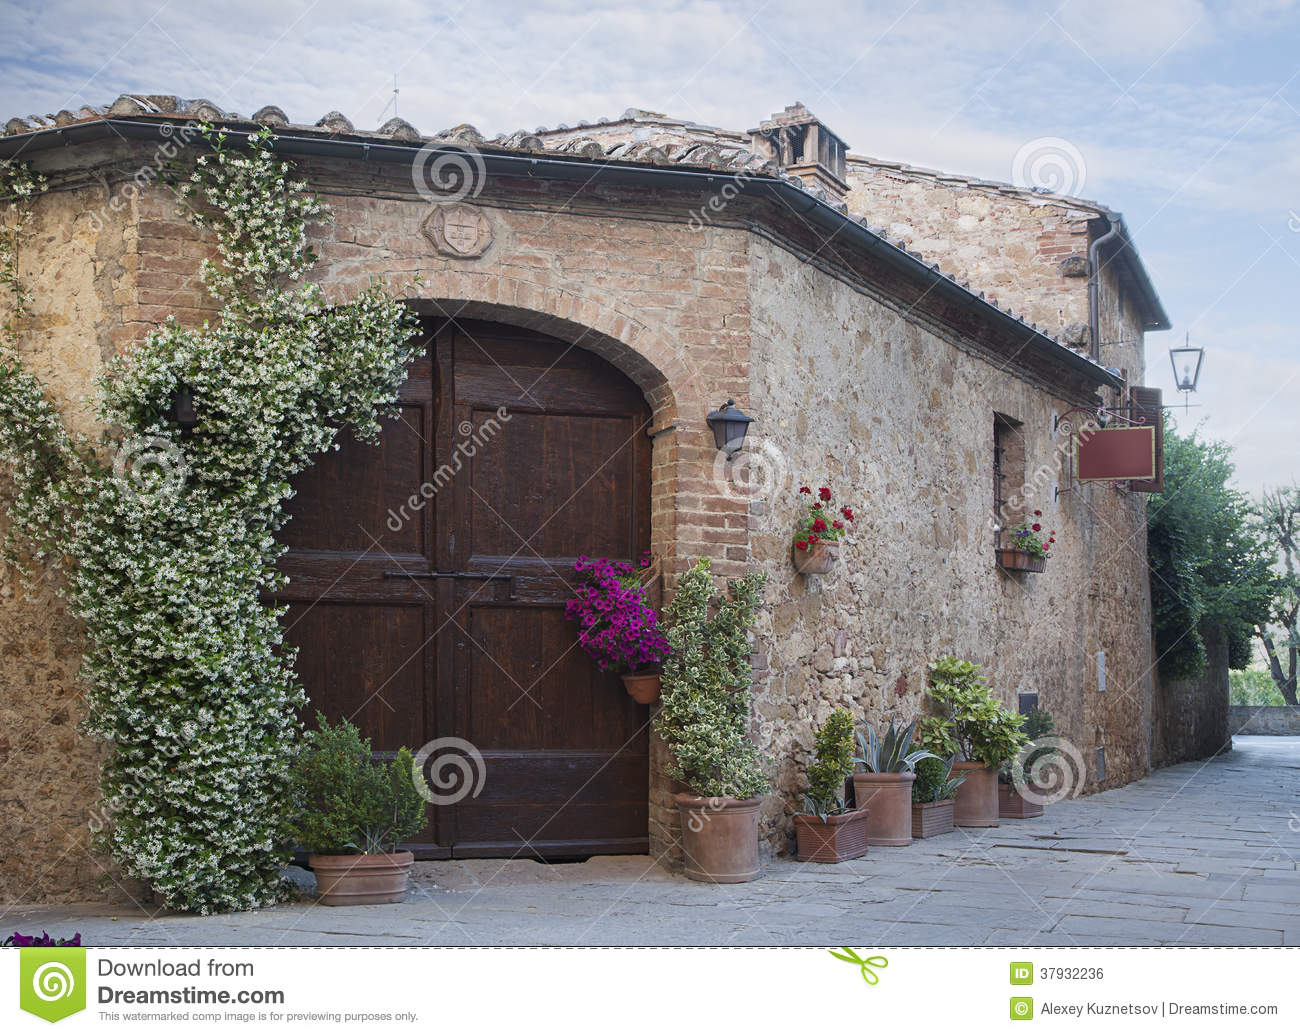 italian kitchen designers with Royalty Free Stock Image Traditional Italian House Tuscany Italy Europe Image37932236 on Los 27 Mejores Disenos De Interiores De Bares Y Restaurantes Del Mundo besides 50 Wonderful Stone Bathroom Designs additionally Modern Home Interior Designers together with Tao Downtown Nyc as well Modular Kitchen.